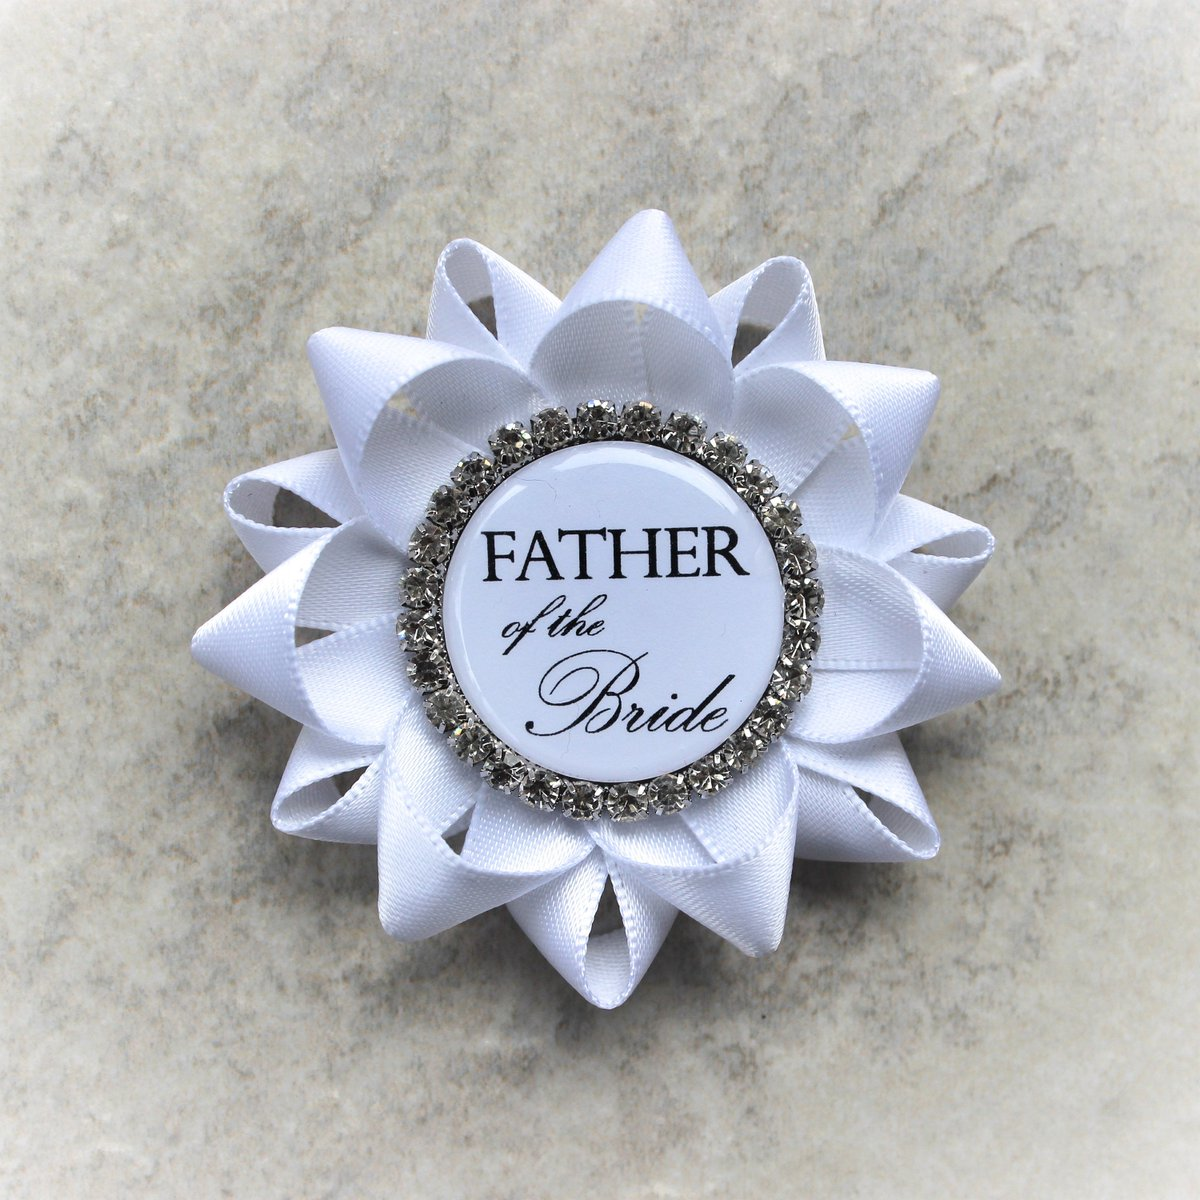 Father of the Bride Pin, Couples Bridal Shower, Father of the Bride Boutonniere, Grandfather of the Bride, Father of the Groom Gift, Uncle http://tuppu.net/89eb2388  #etsy #handmade #etsyhandmade #shopetsy #shopsmall #cute